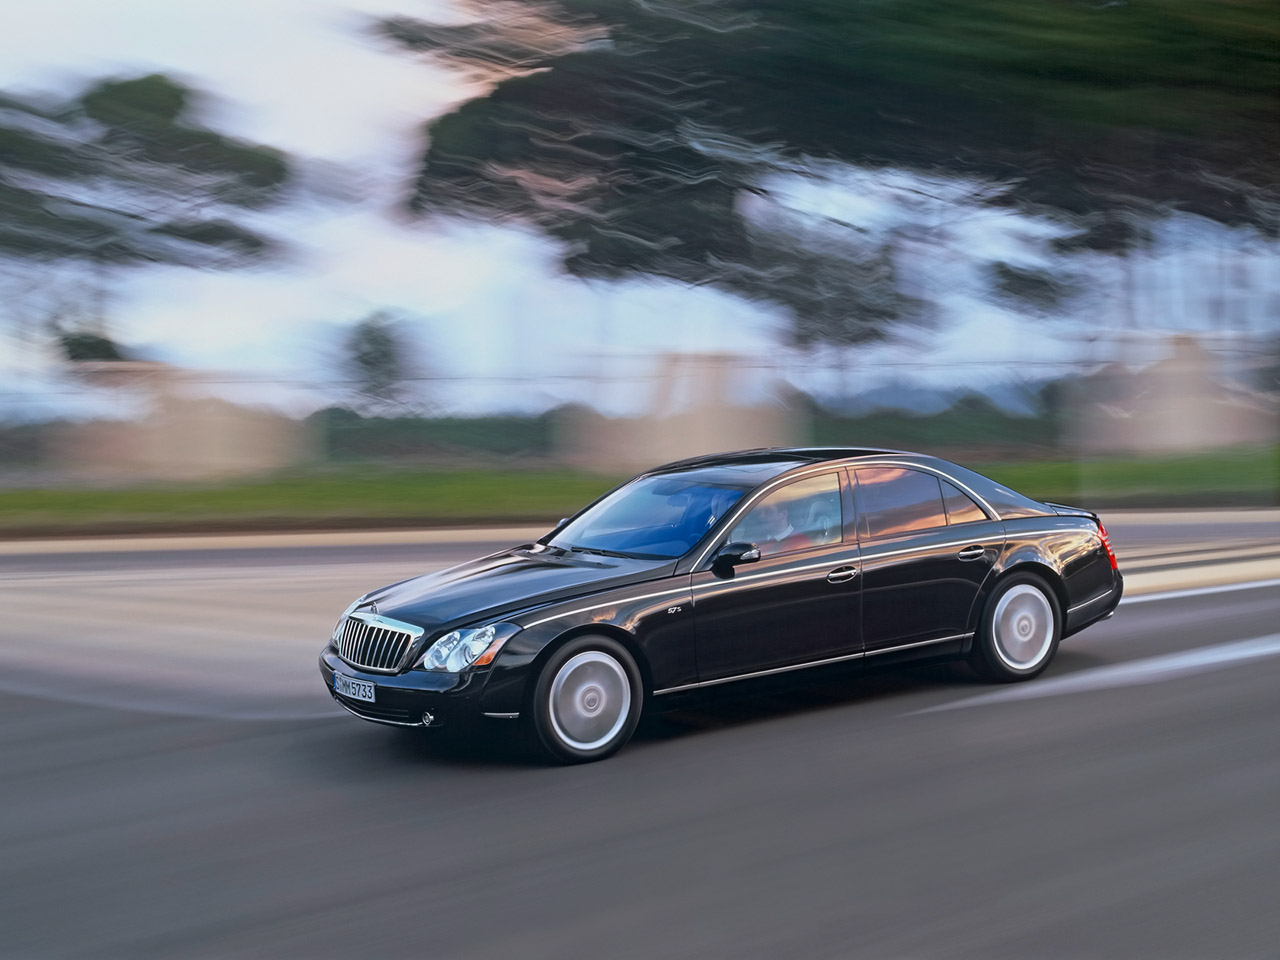 2005 Maybach 57 S Image Photo 13 Of 13 HD Wallpapers Download free images and photos [musssic.tk]